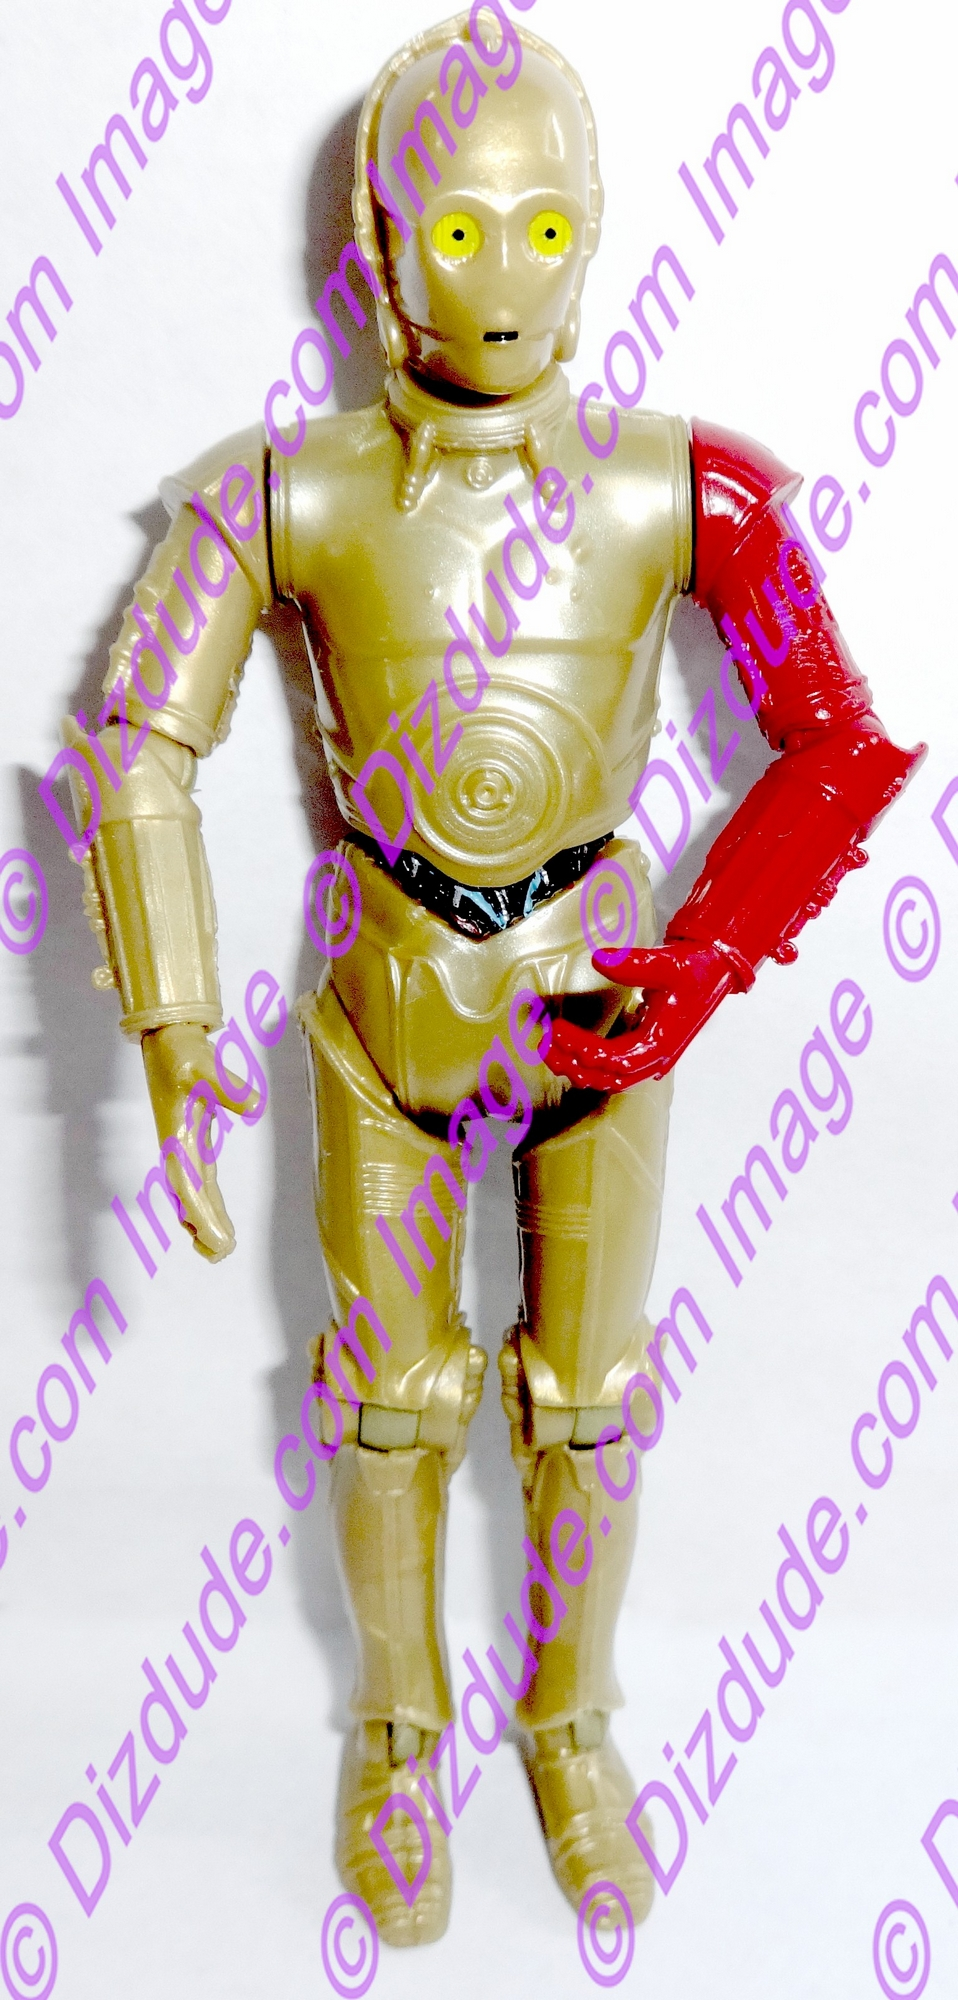 Star Wars The Force Awakens Gold C-3PO Protocol Droid from Disney Star Wars Build-A-Droid Factory